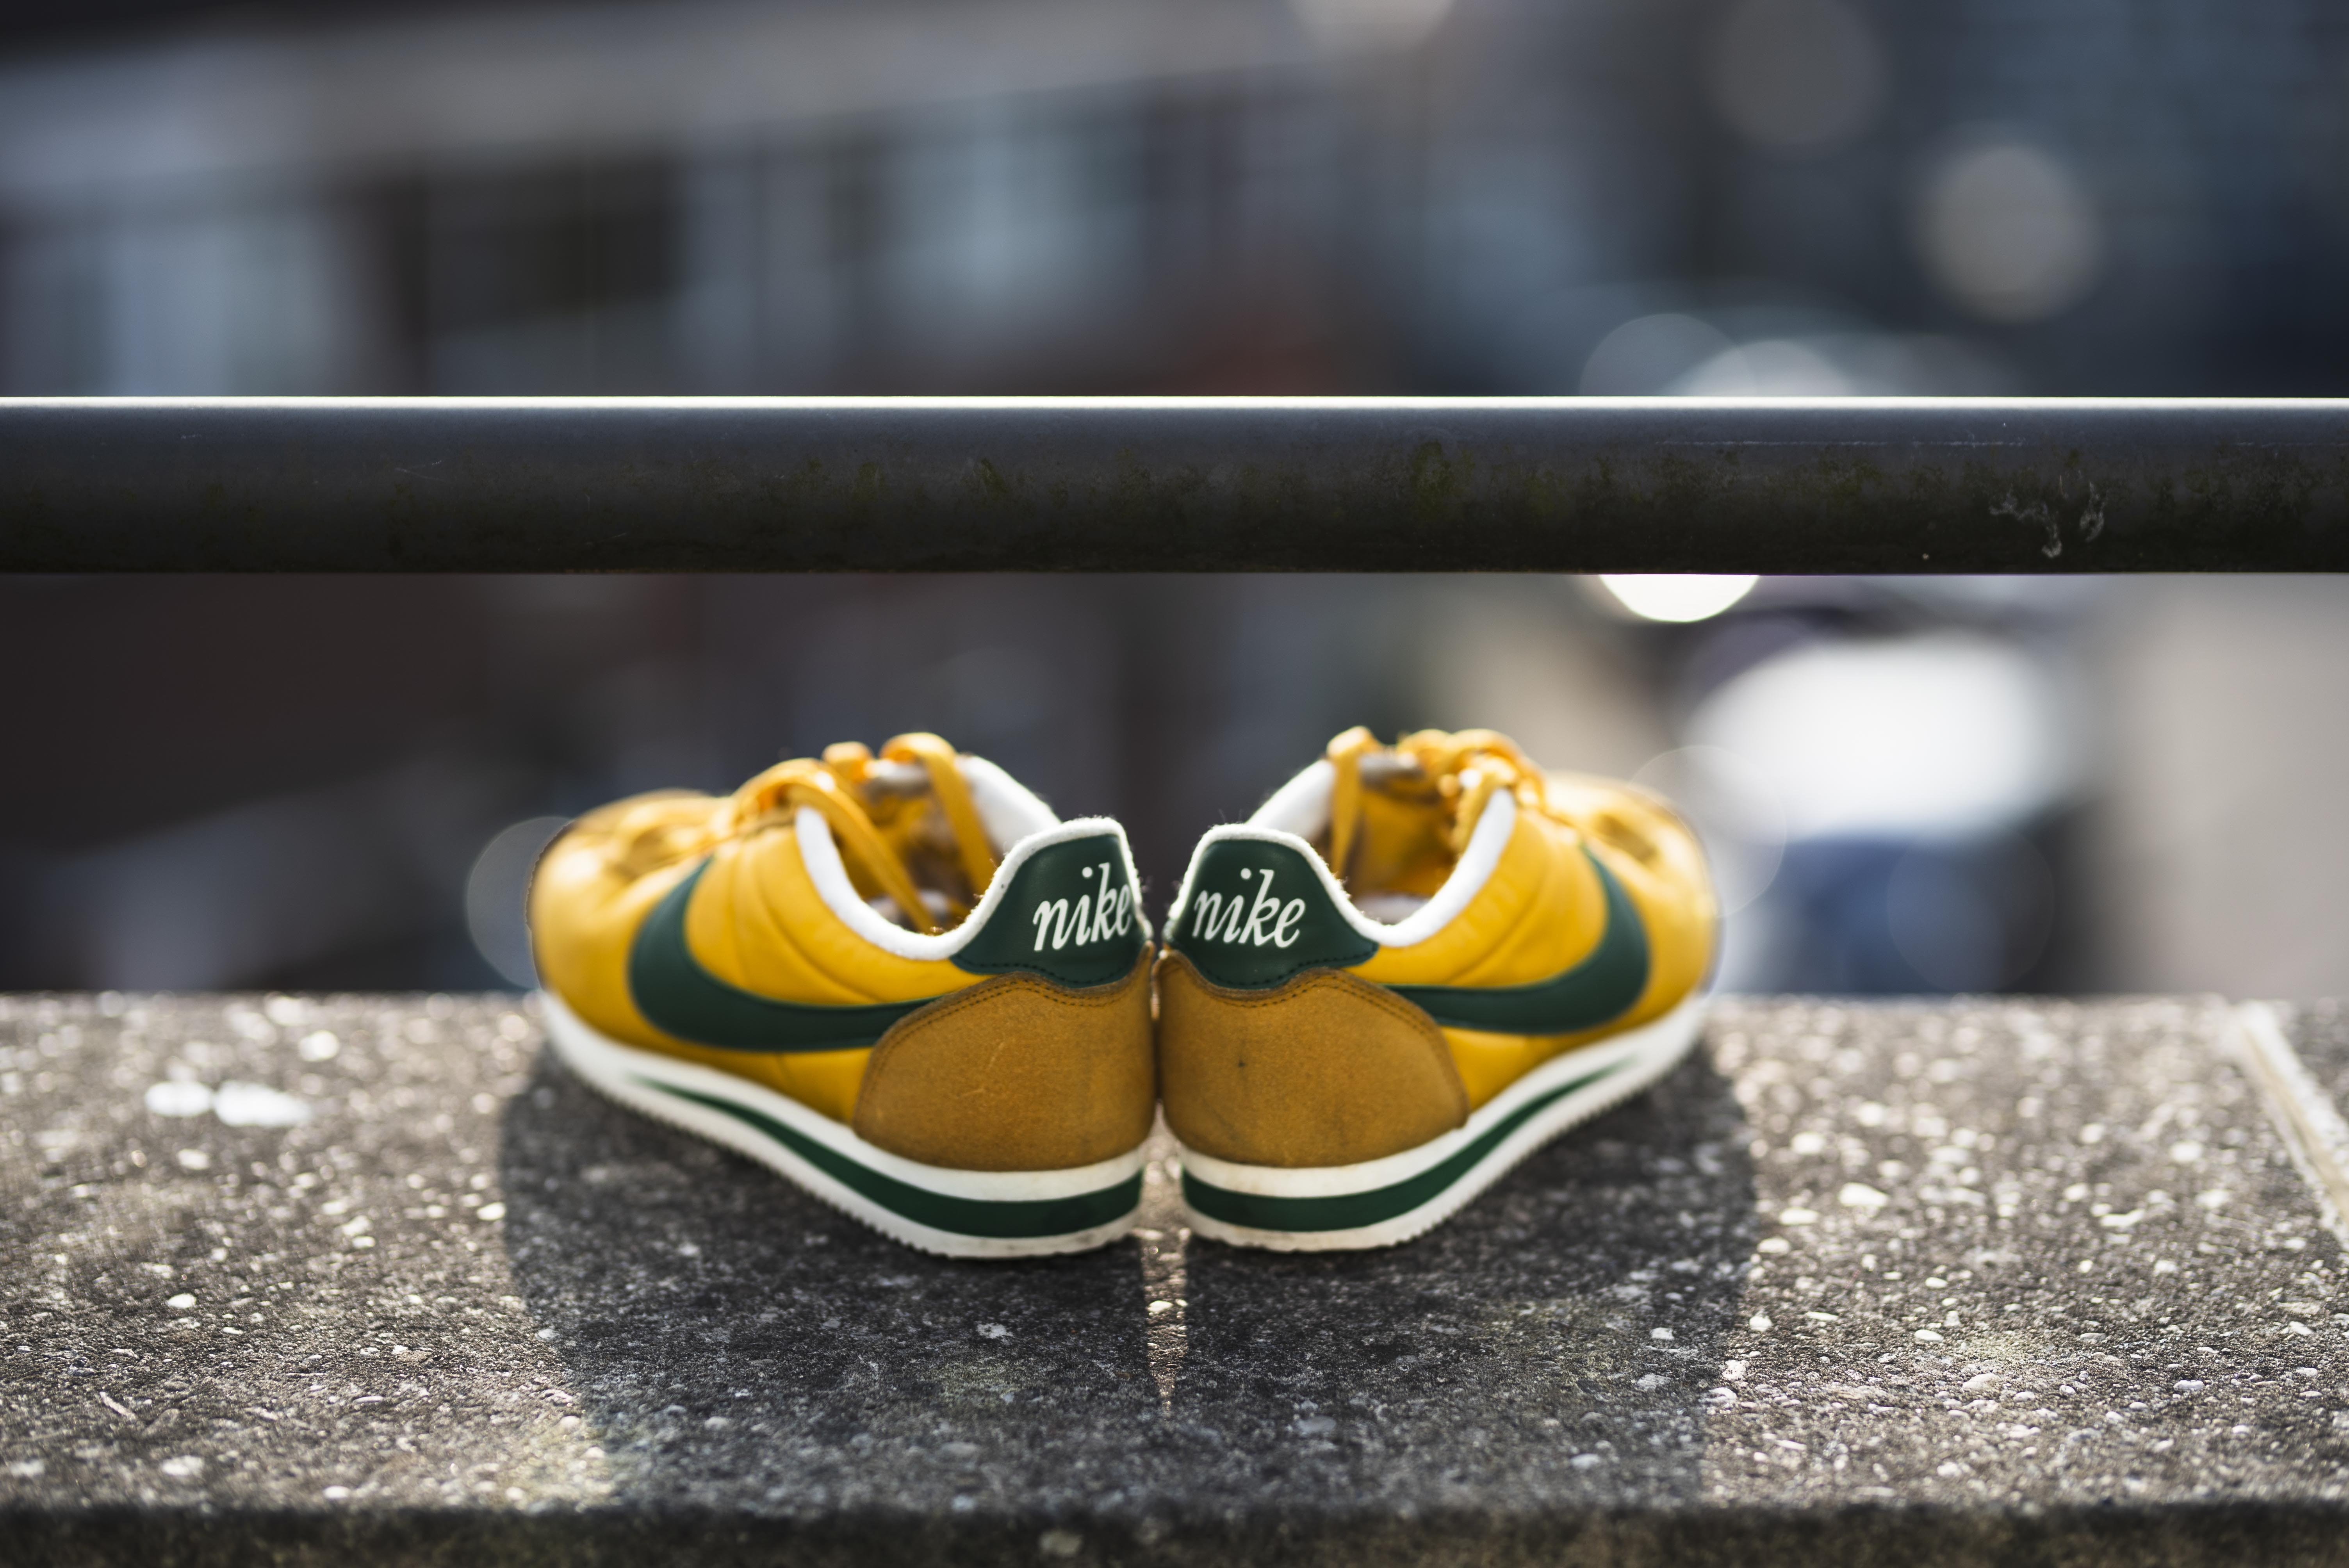 selective focus photography of yellow-black-and-white Nike Cortez shoes